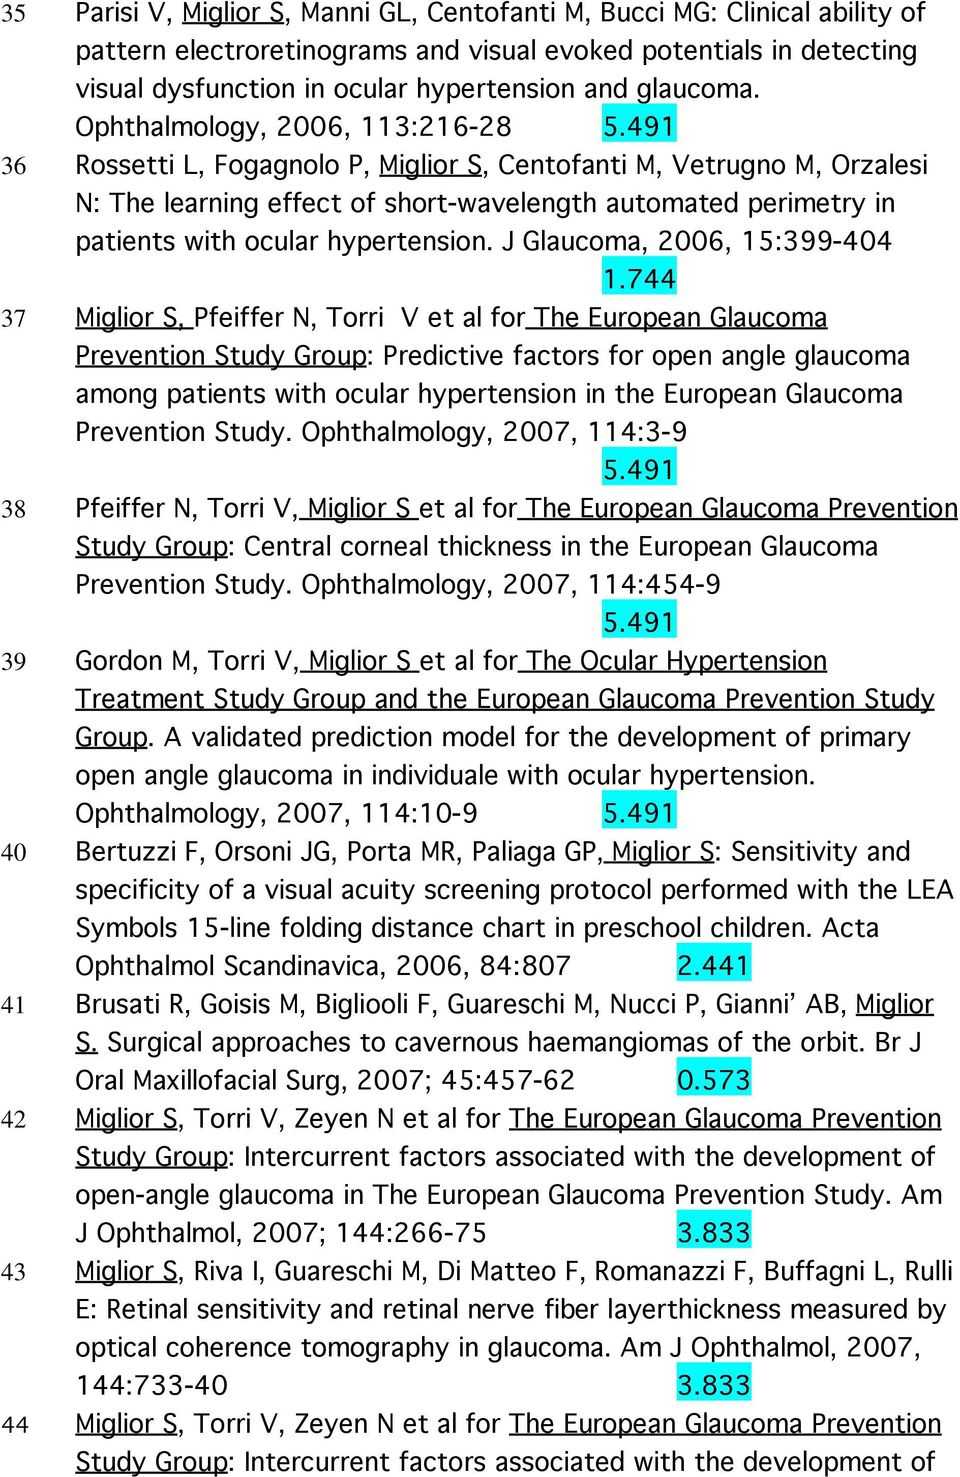 491 36 Rossetti L, Fogagnolo P, Miglior S, Centofanti M, Vetrugno M, Orzalesi N: The learning effect of short-wavelength automated perimetry in patients with ocular hypertension.